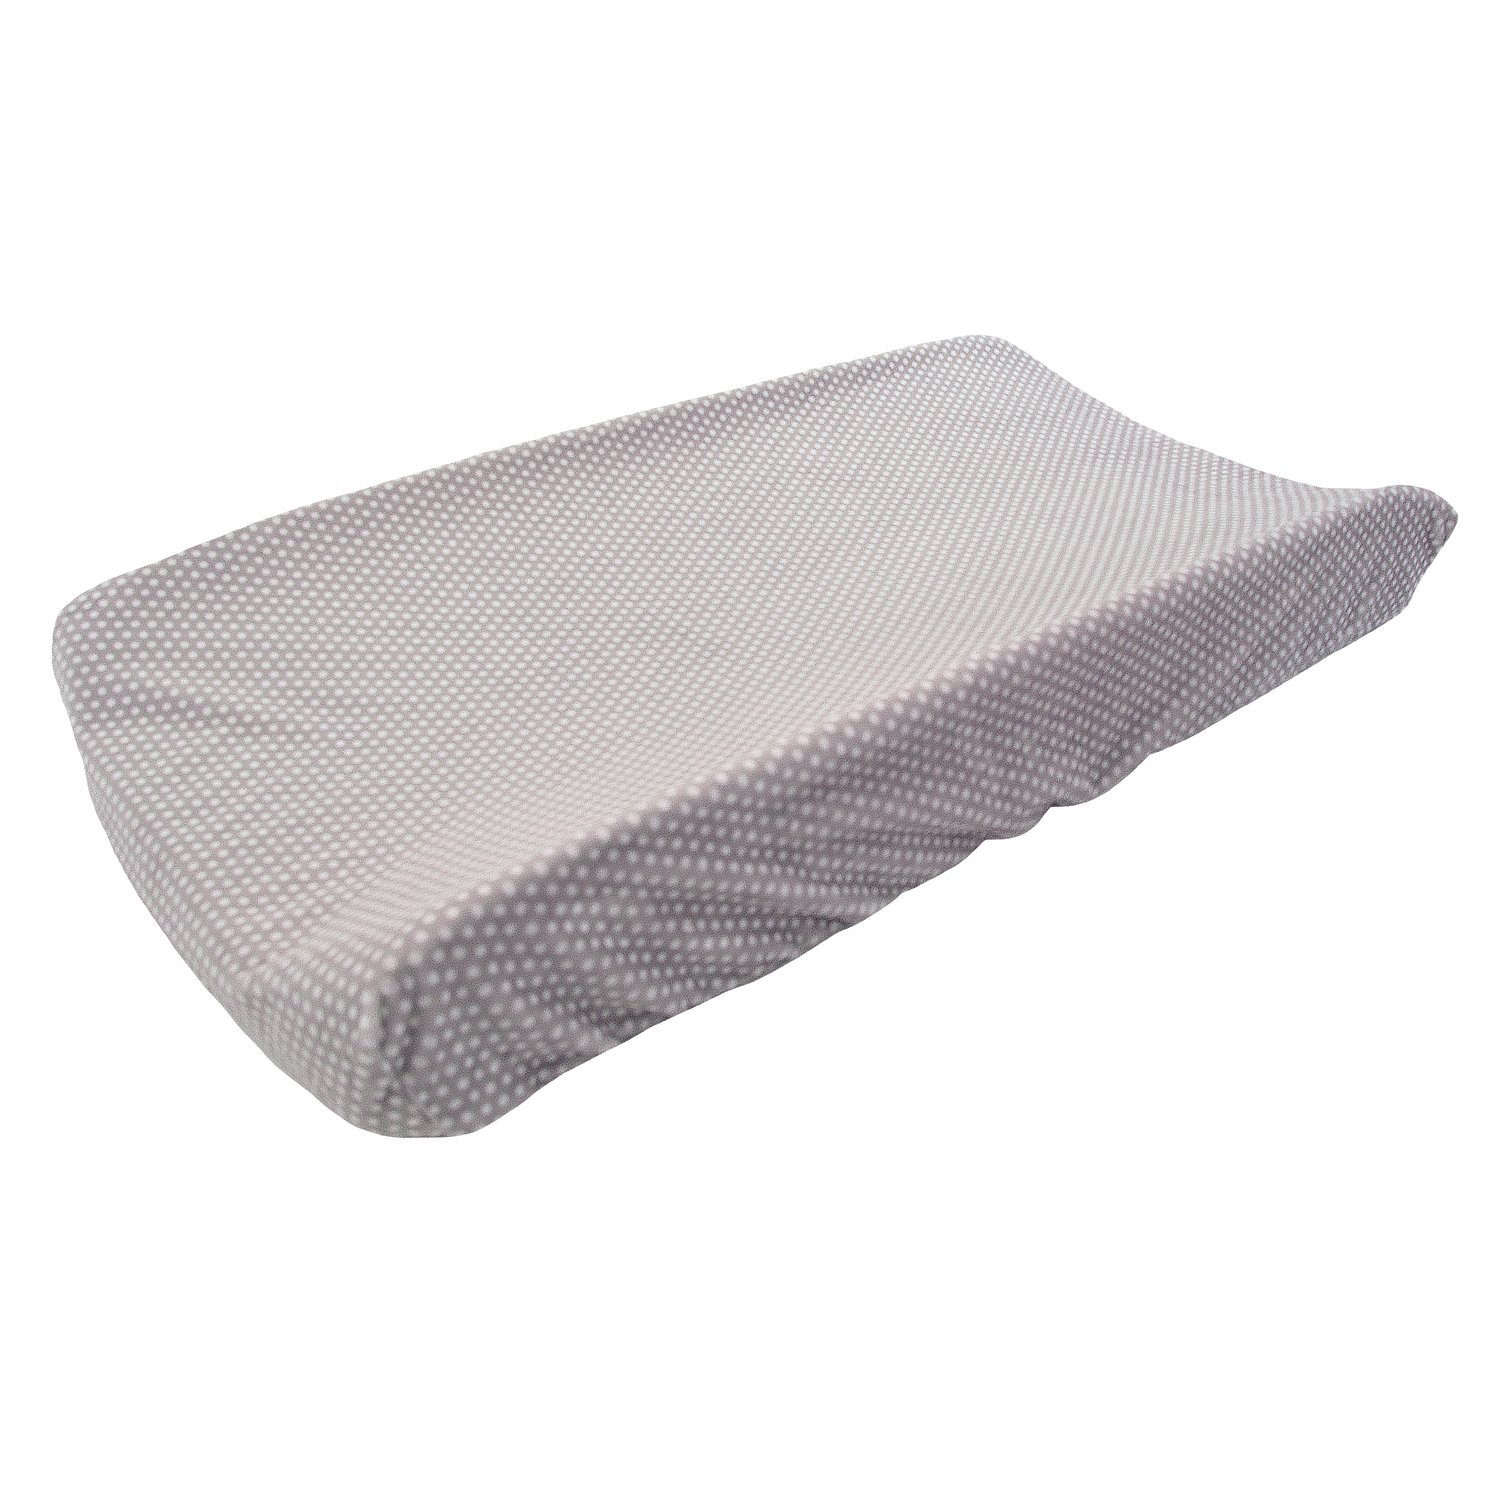 My Blankee Swiss Dot Minky Changing Pad Cover, Silver, 16'' x 32''